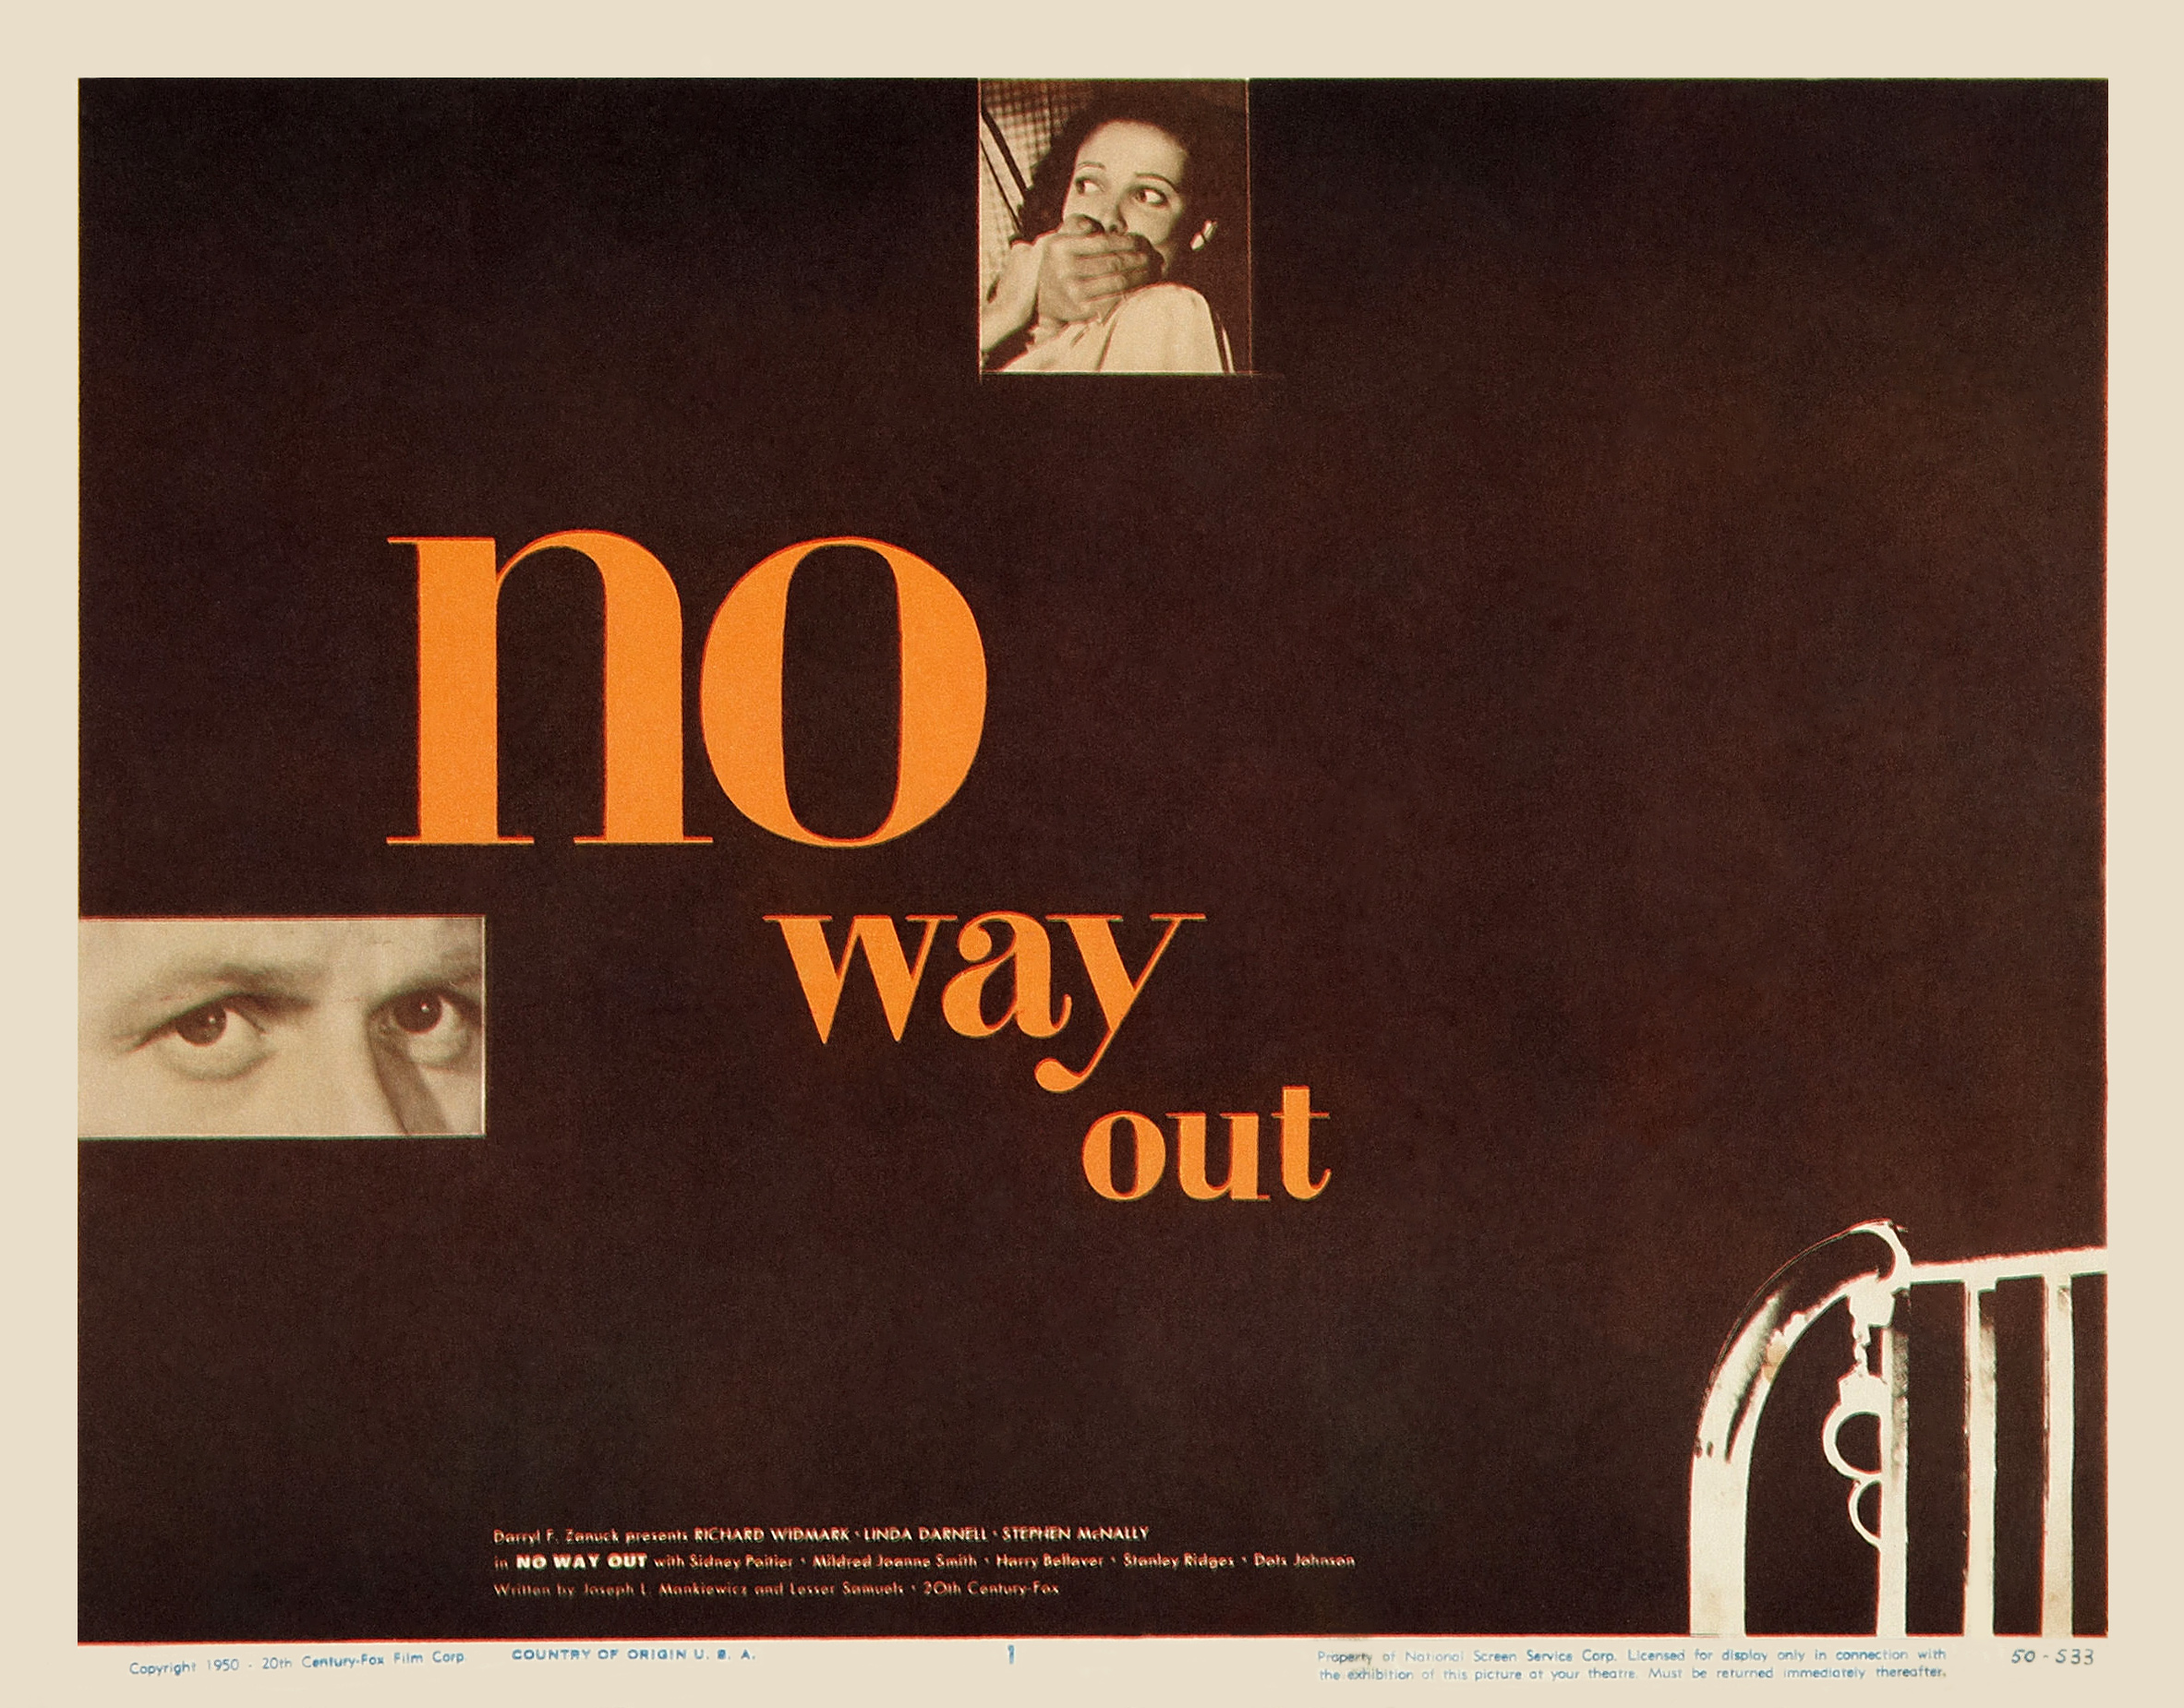 no way out Find album reviews, stream songs, credits and award information for no way out - puff daddy & the family, puff daddy on allmusic - 1997 - before releasing his first solo album, puff daddy&hellip.